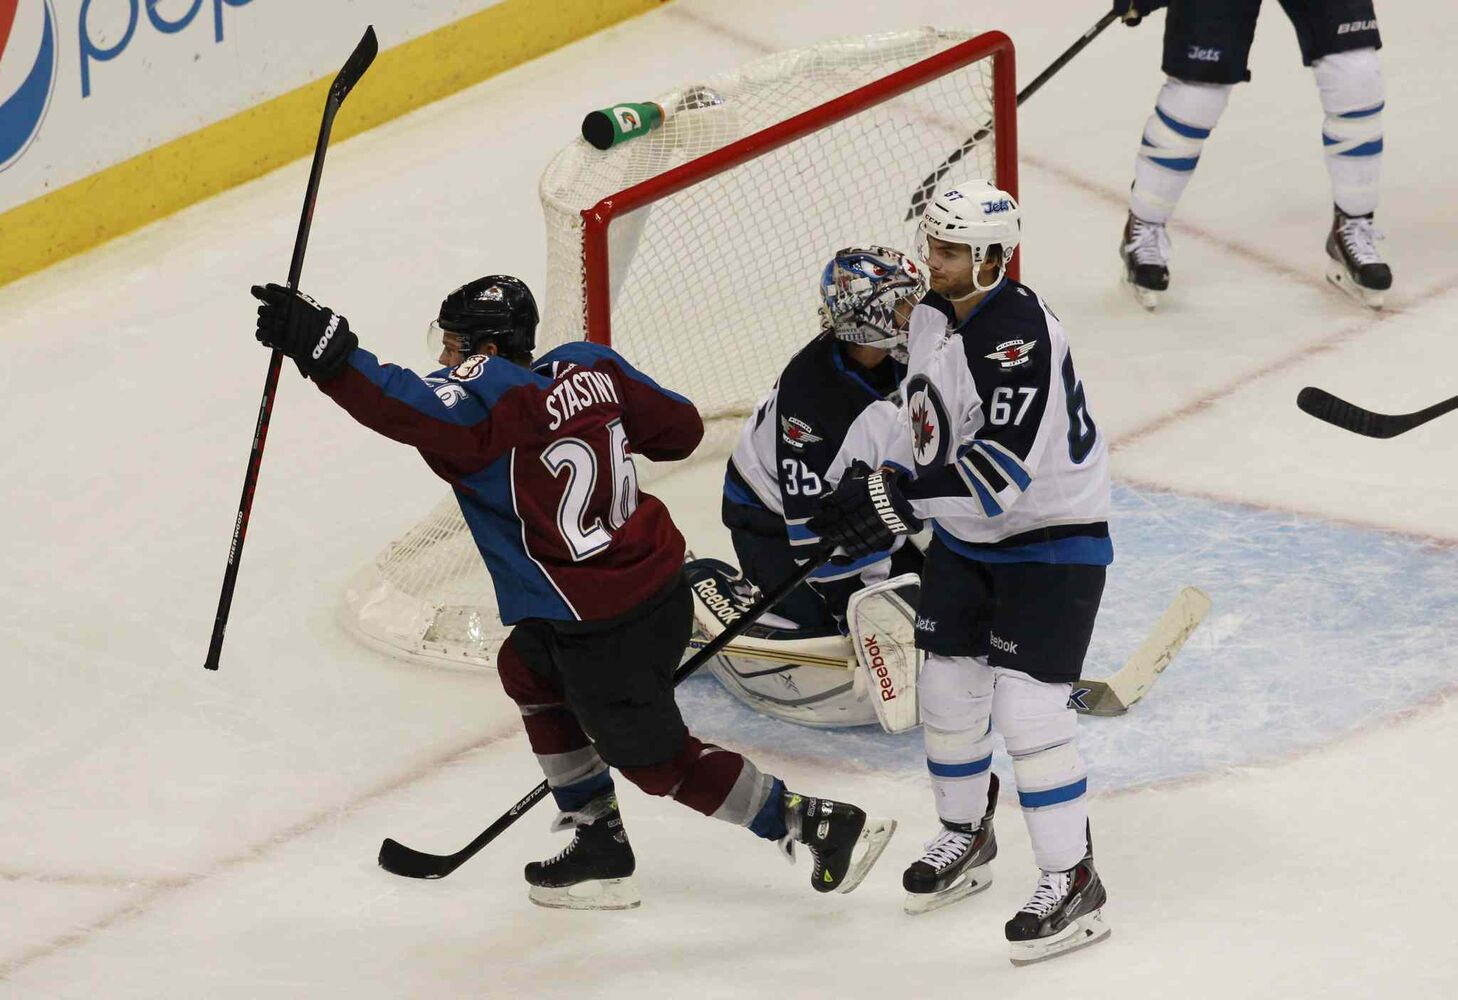 Colorado Avalanche center Paul Stastny (left) celebrates after scoring the scoring the game-winning goal as Al Montoya (centre) and winger Michael Froliklook on in the third period. (David Zalubowski / The Associated Press)